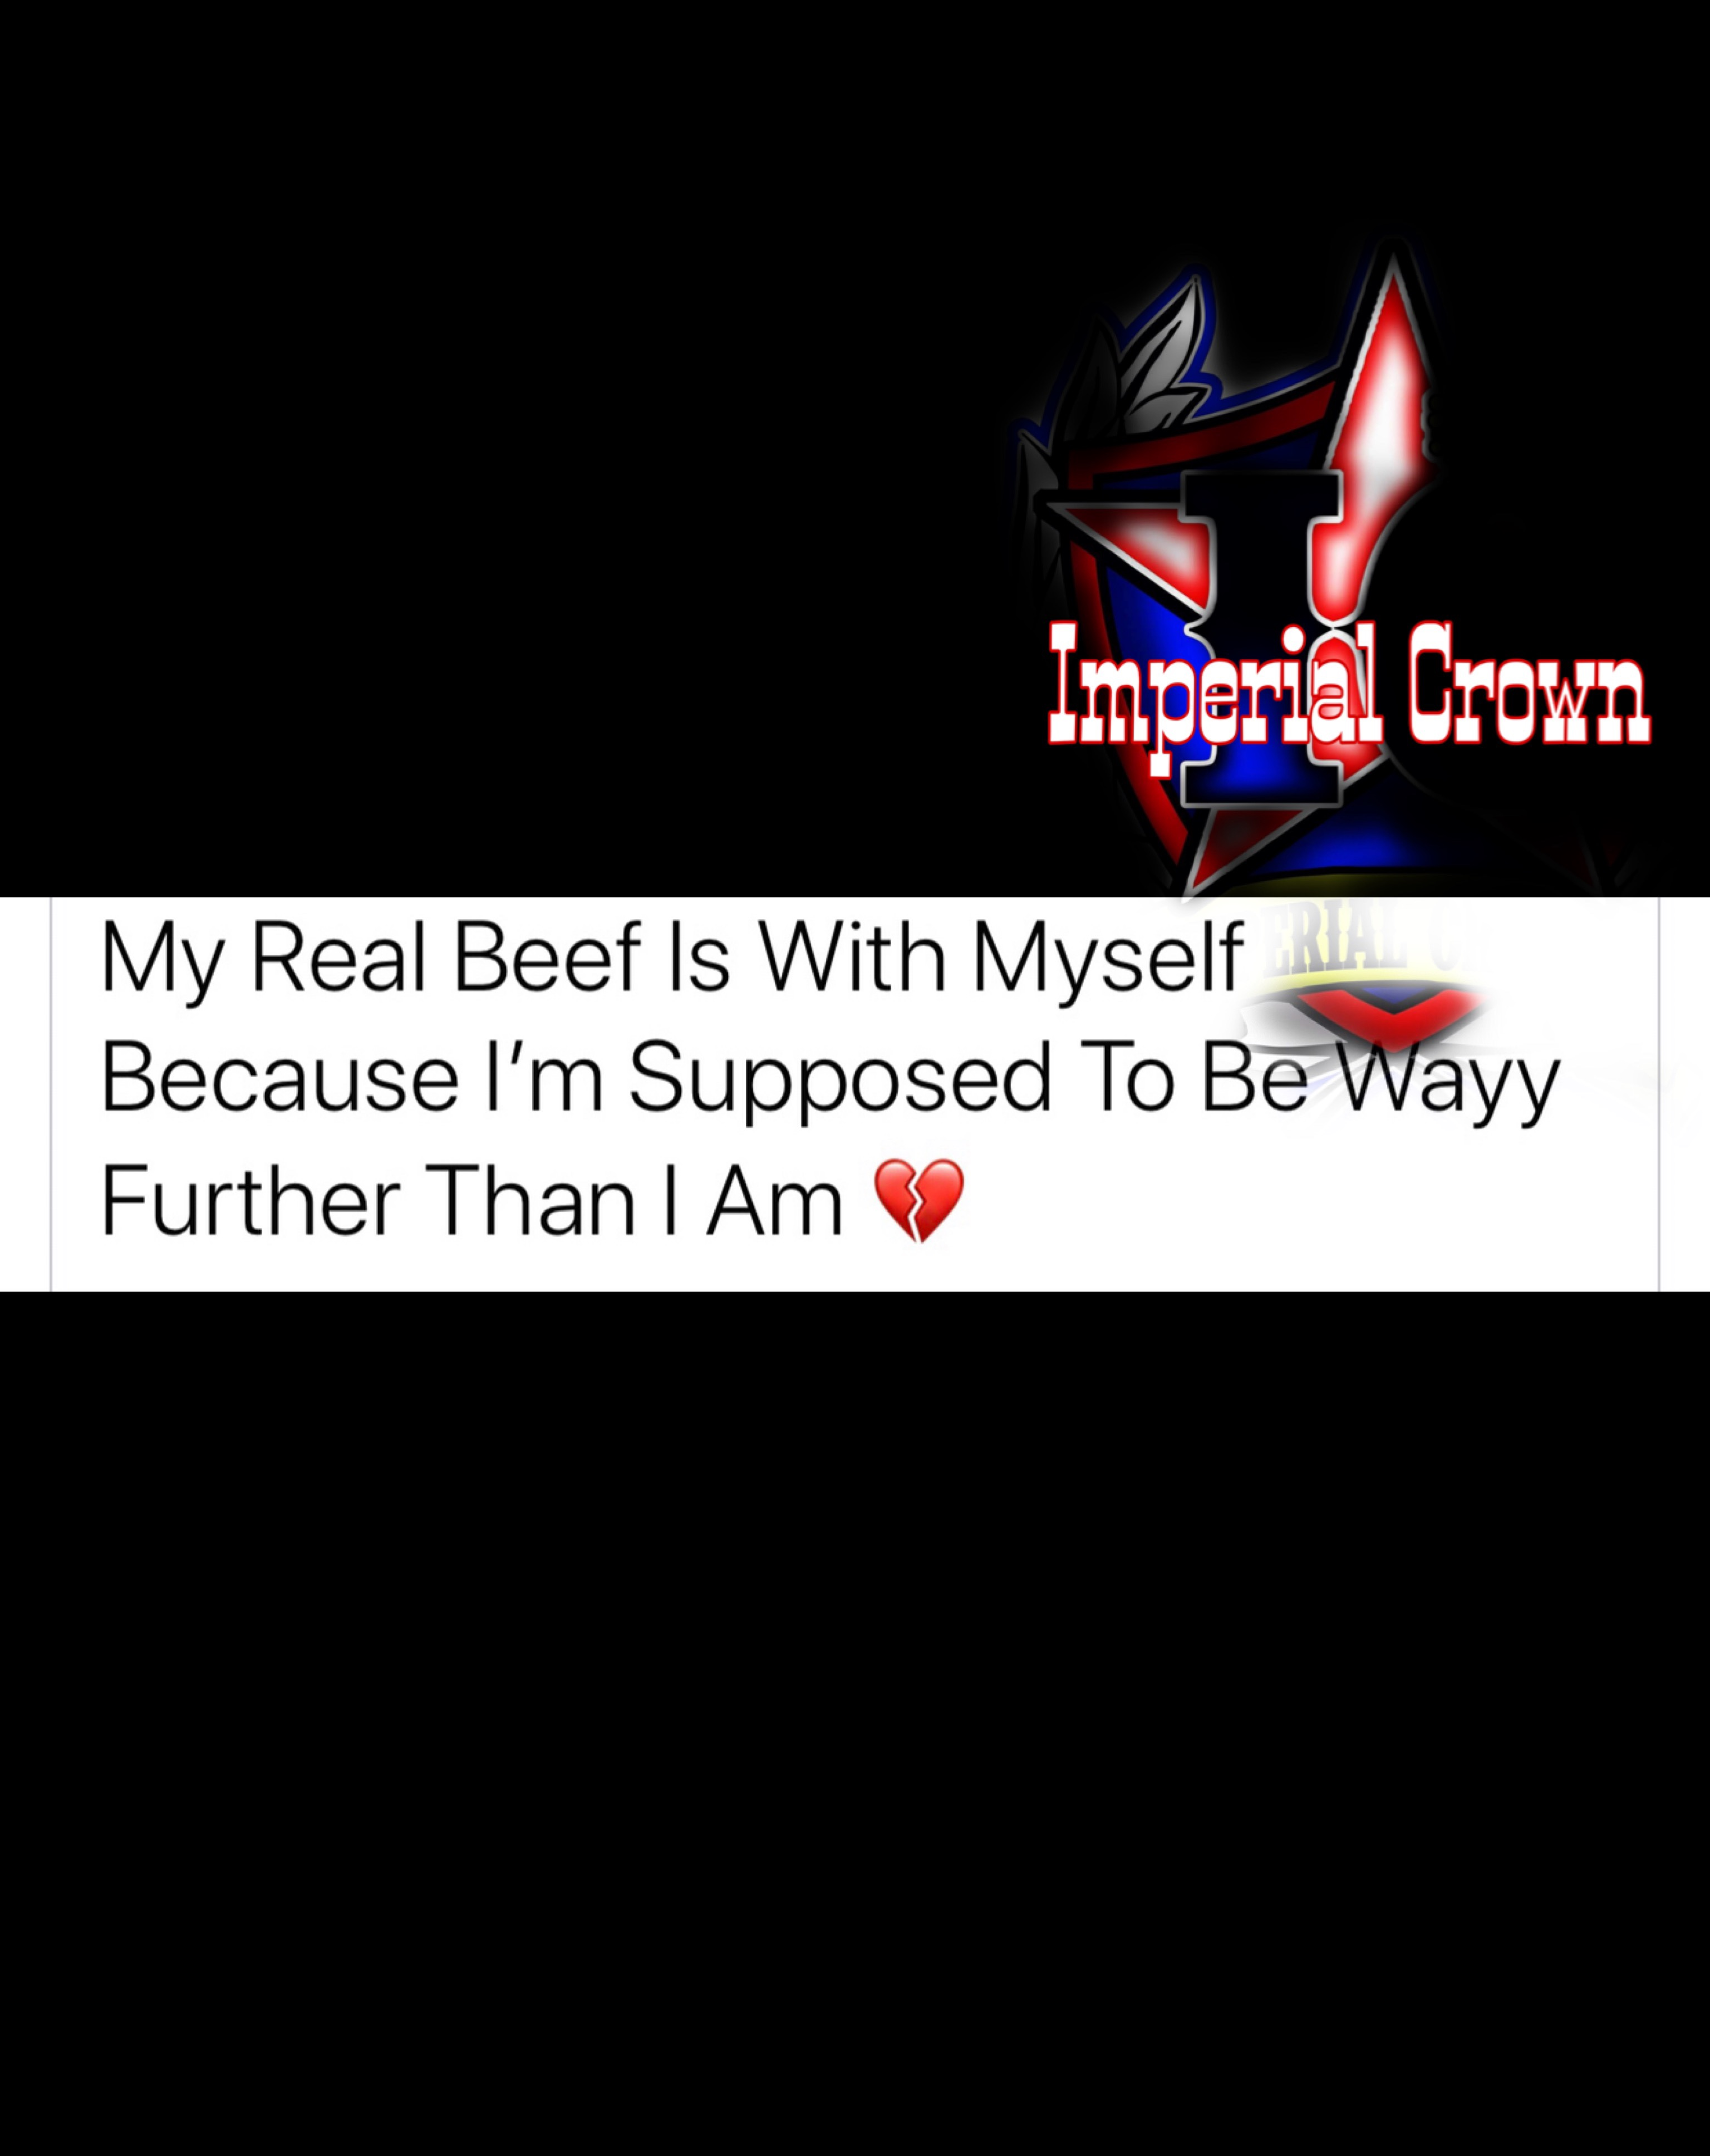 My real beef is with myself because I am supposed to be wayy further than I am